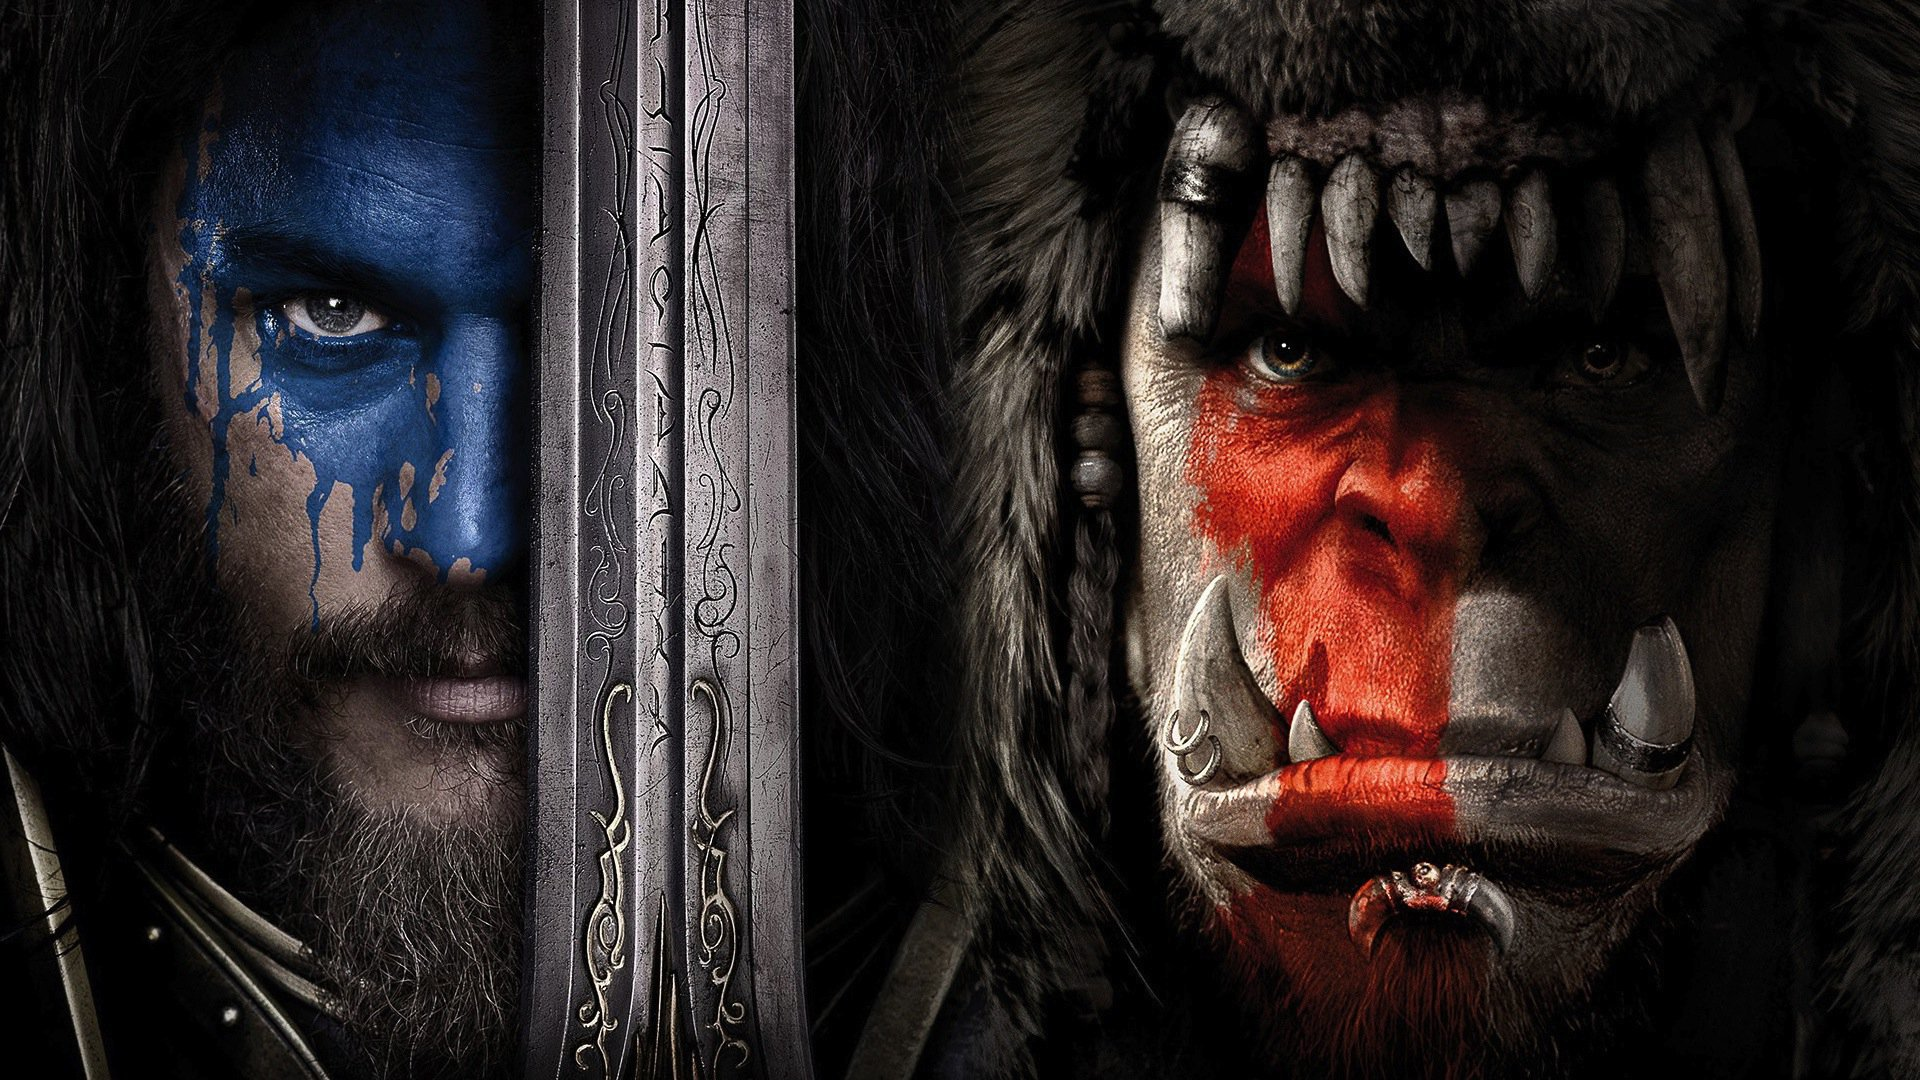 Rampage Movie Hd Wallpapers Download 1080p: Warcraft Movie HD Background